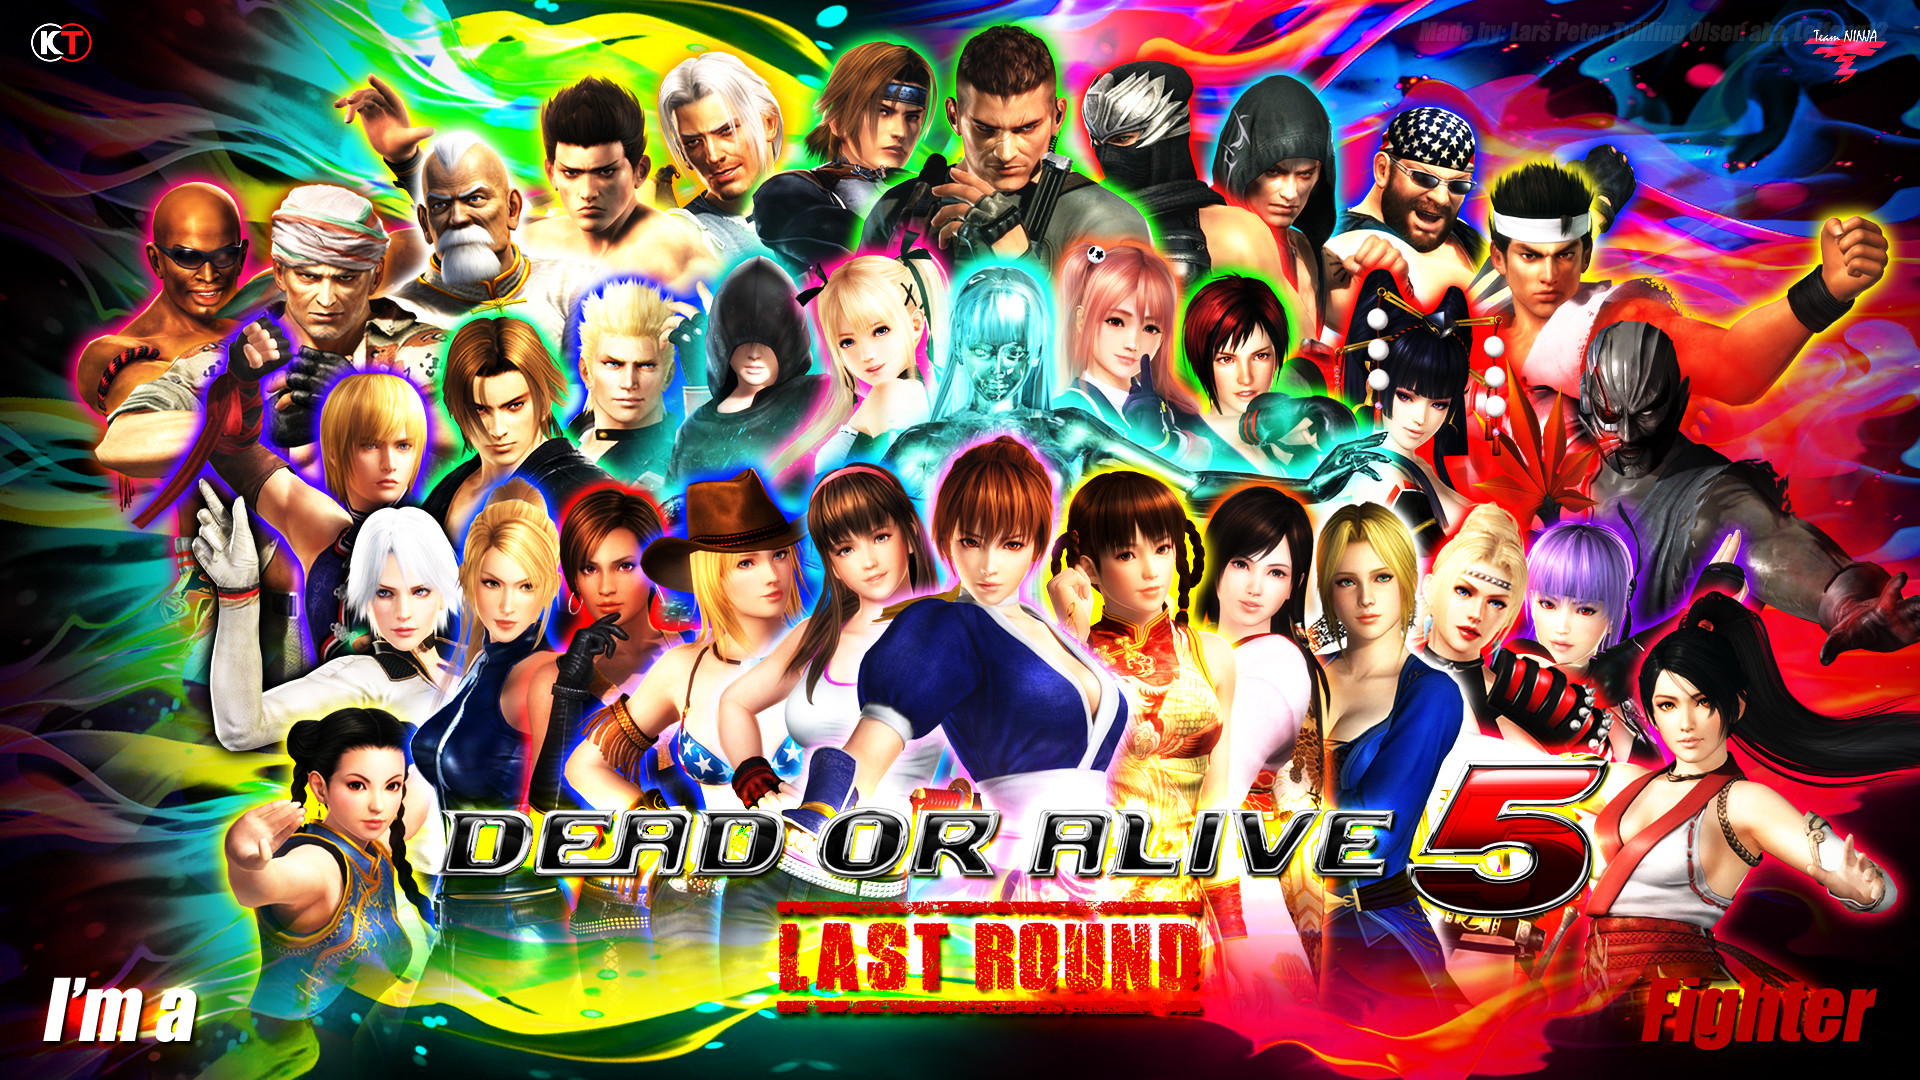 1920x1080 ... DEAD OR ALIVE 5 - LAST ROUND - CHARACTER WALLPAPER by Leifang12